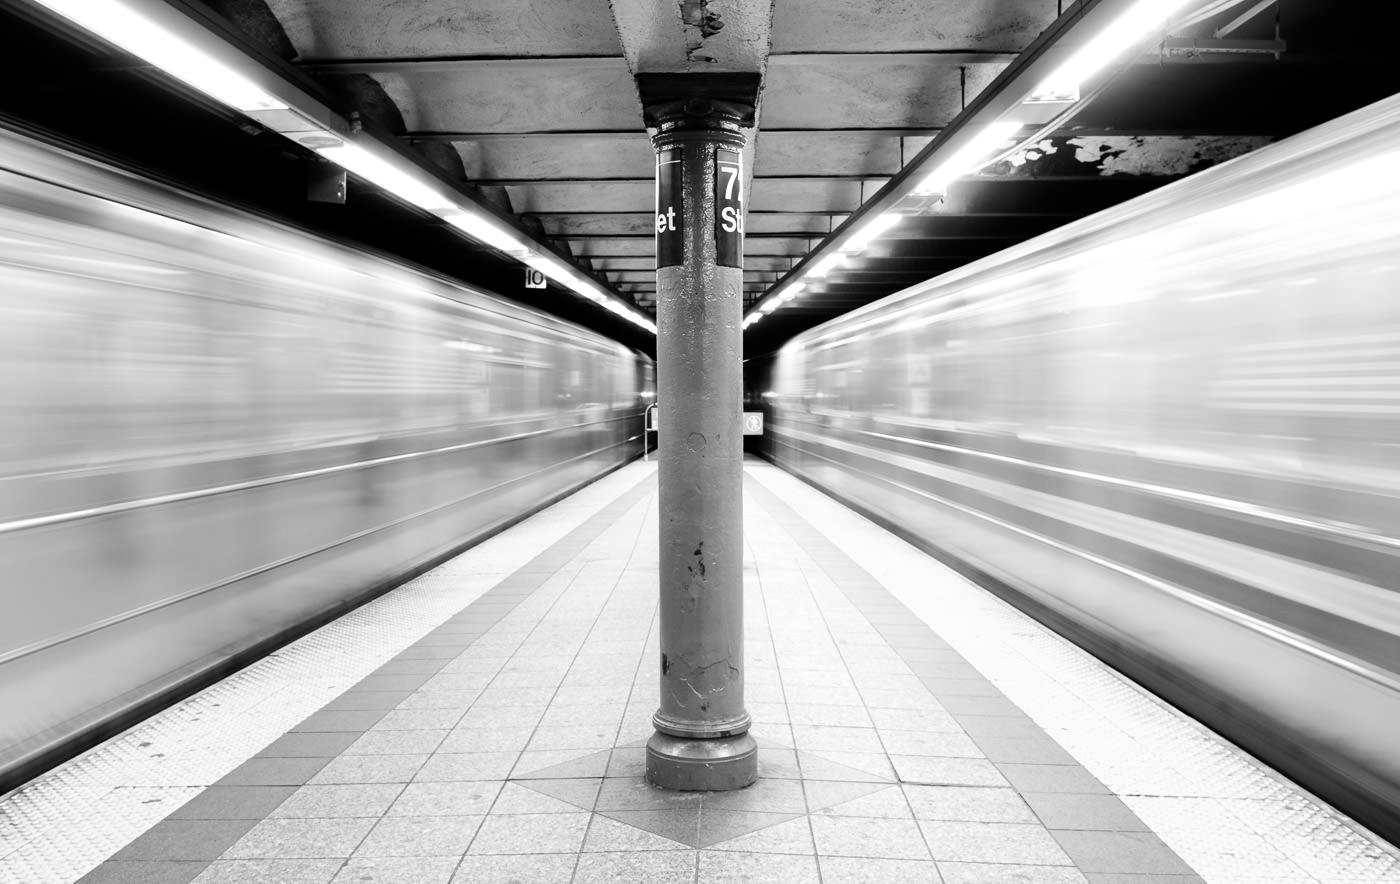 NYC Subway trains rushing by on both sides of platform, creating blurred space around the centre